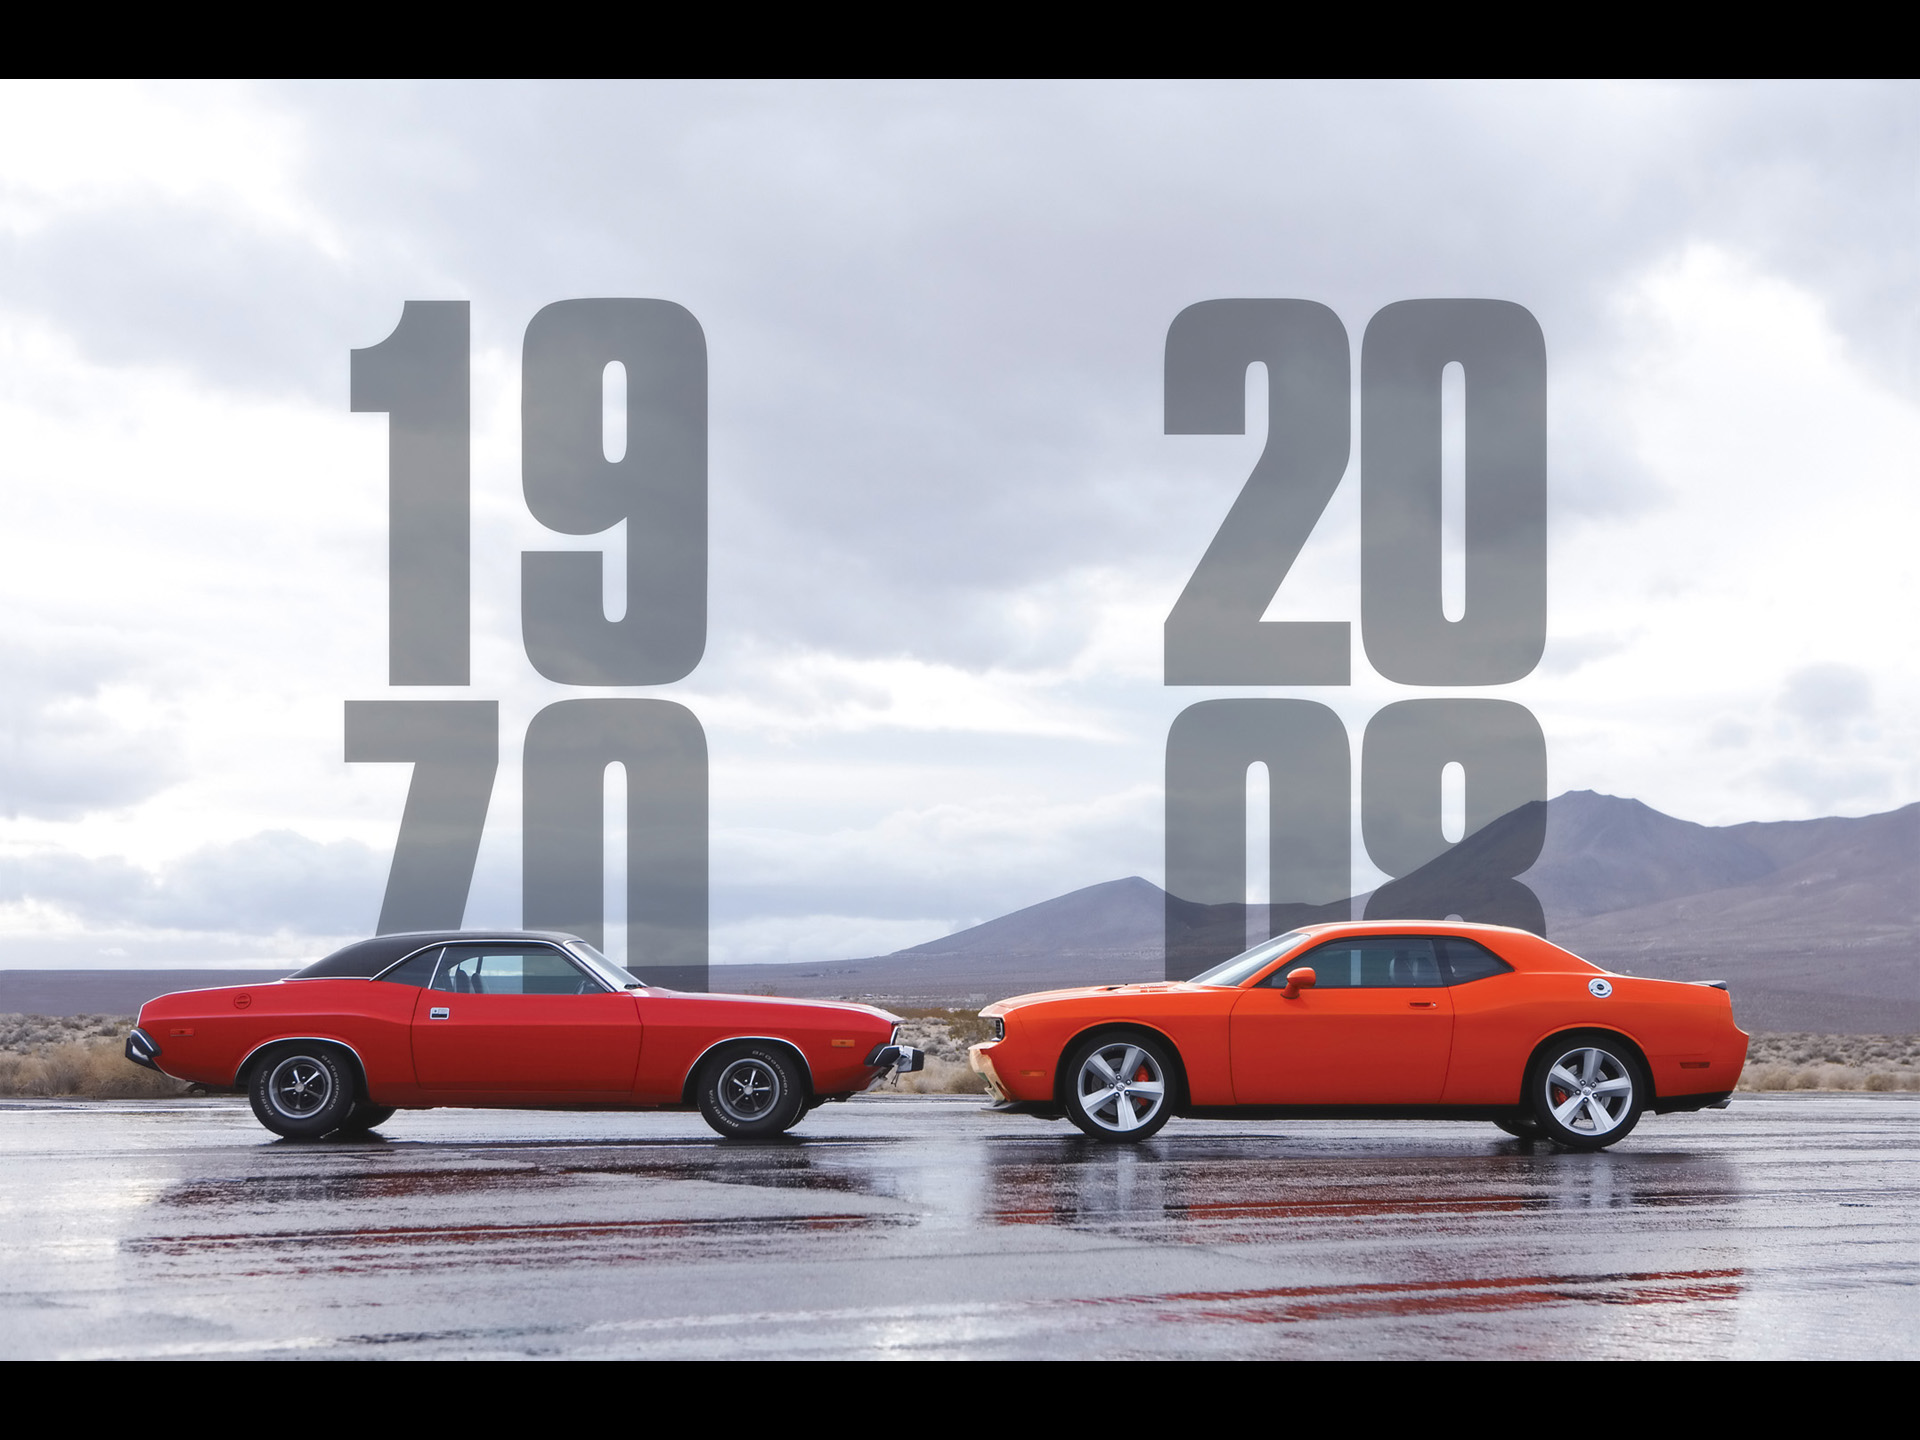 Dodge Challenger 1970 Wallpaper The Way The Dodge 1970 2008 Wallpaper Should Have Been Dodge